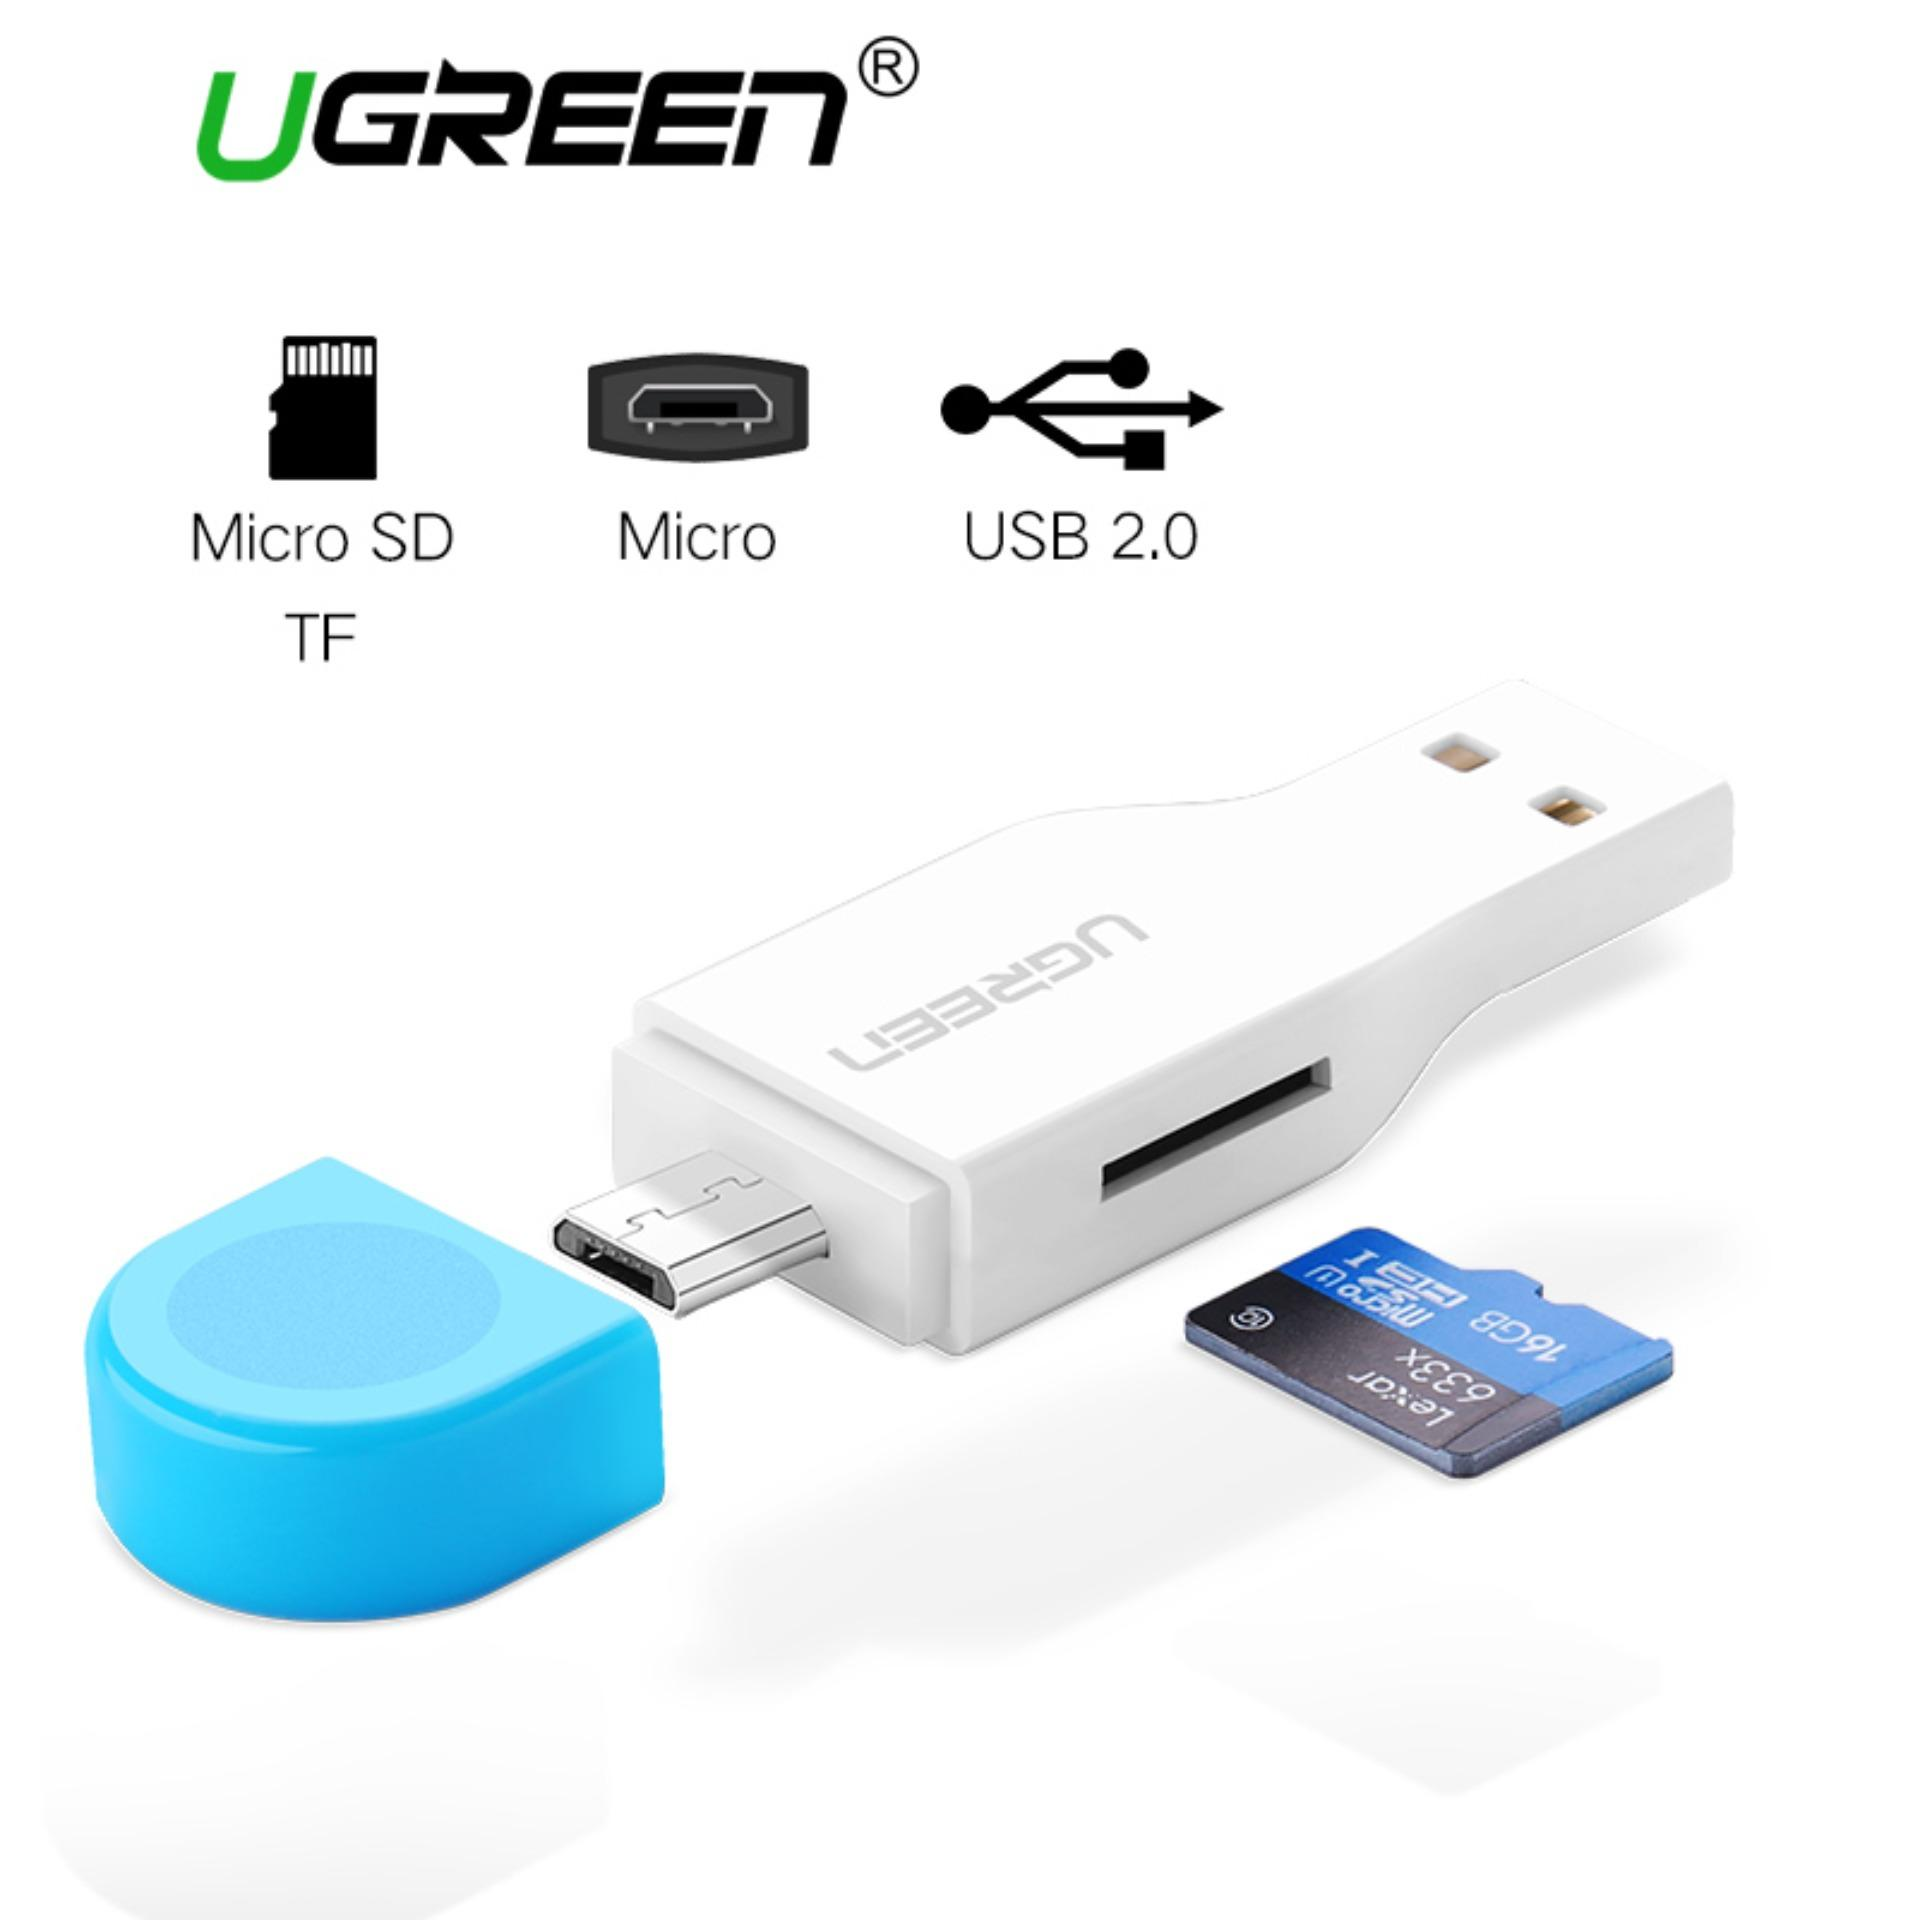 Card Readers For Sale Camera Prices Brands Specs Transcend Reader Rdf8 White Usb 30 All In 1 Ugreen Universal Micro Sd Tf Flash Memory With Otg